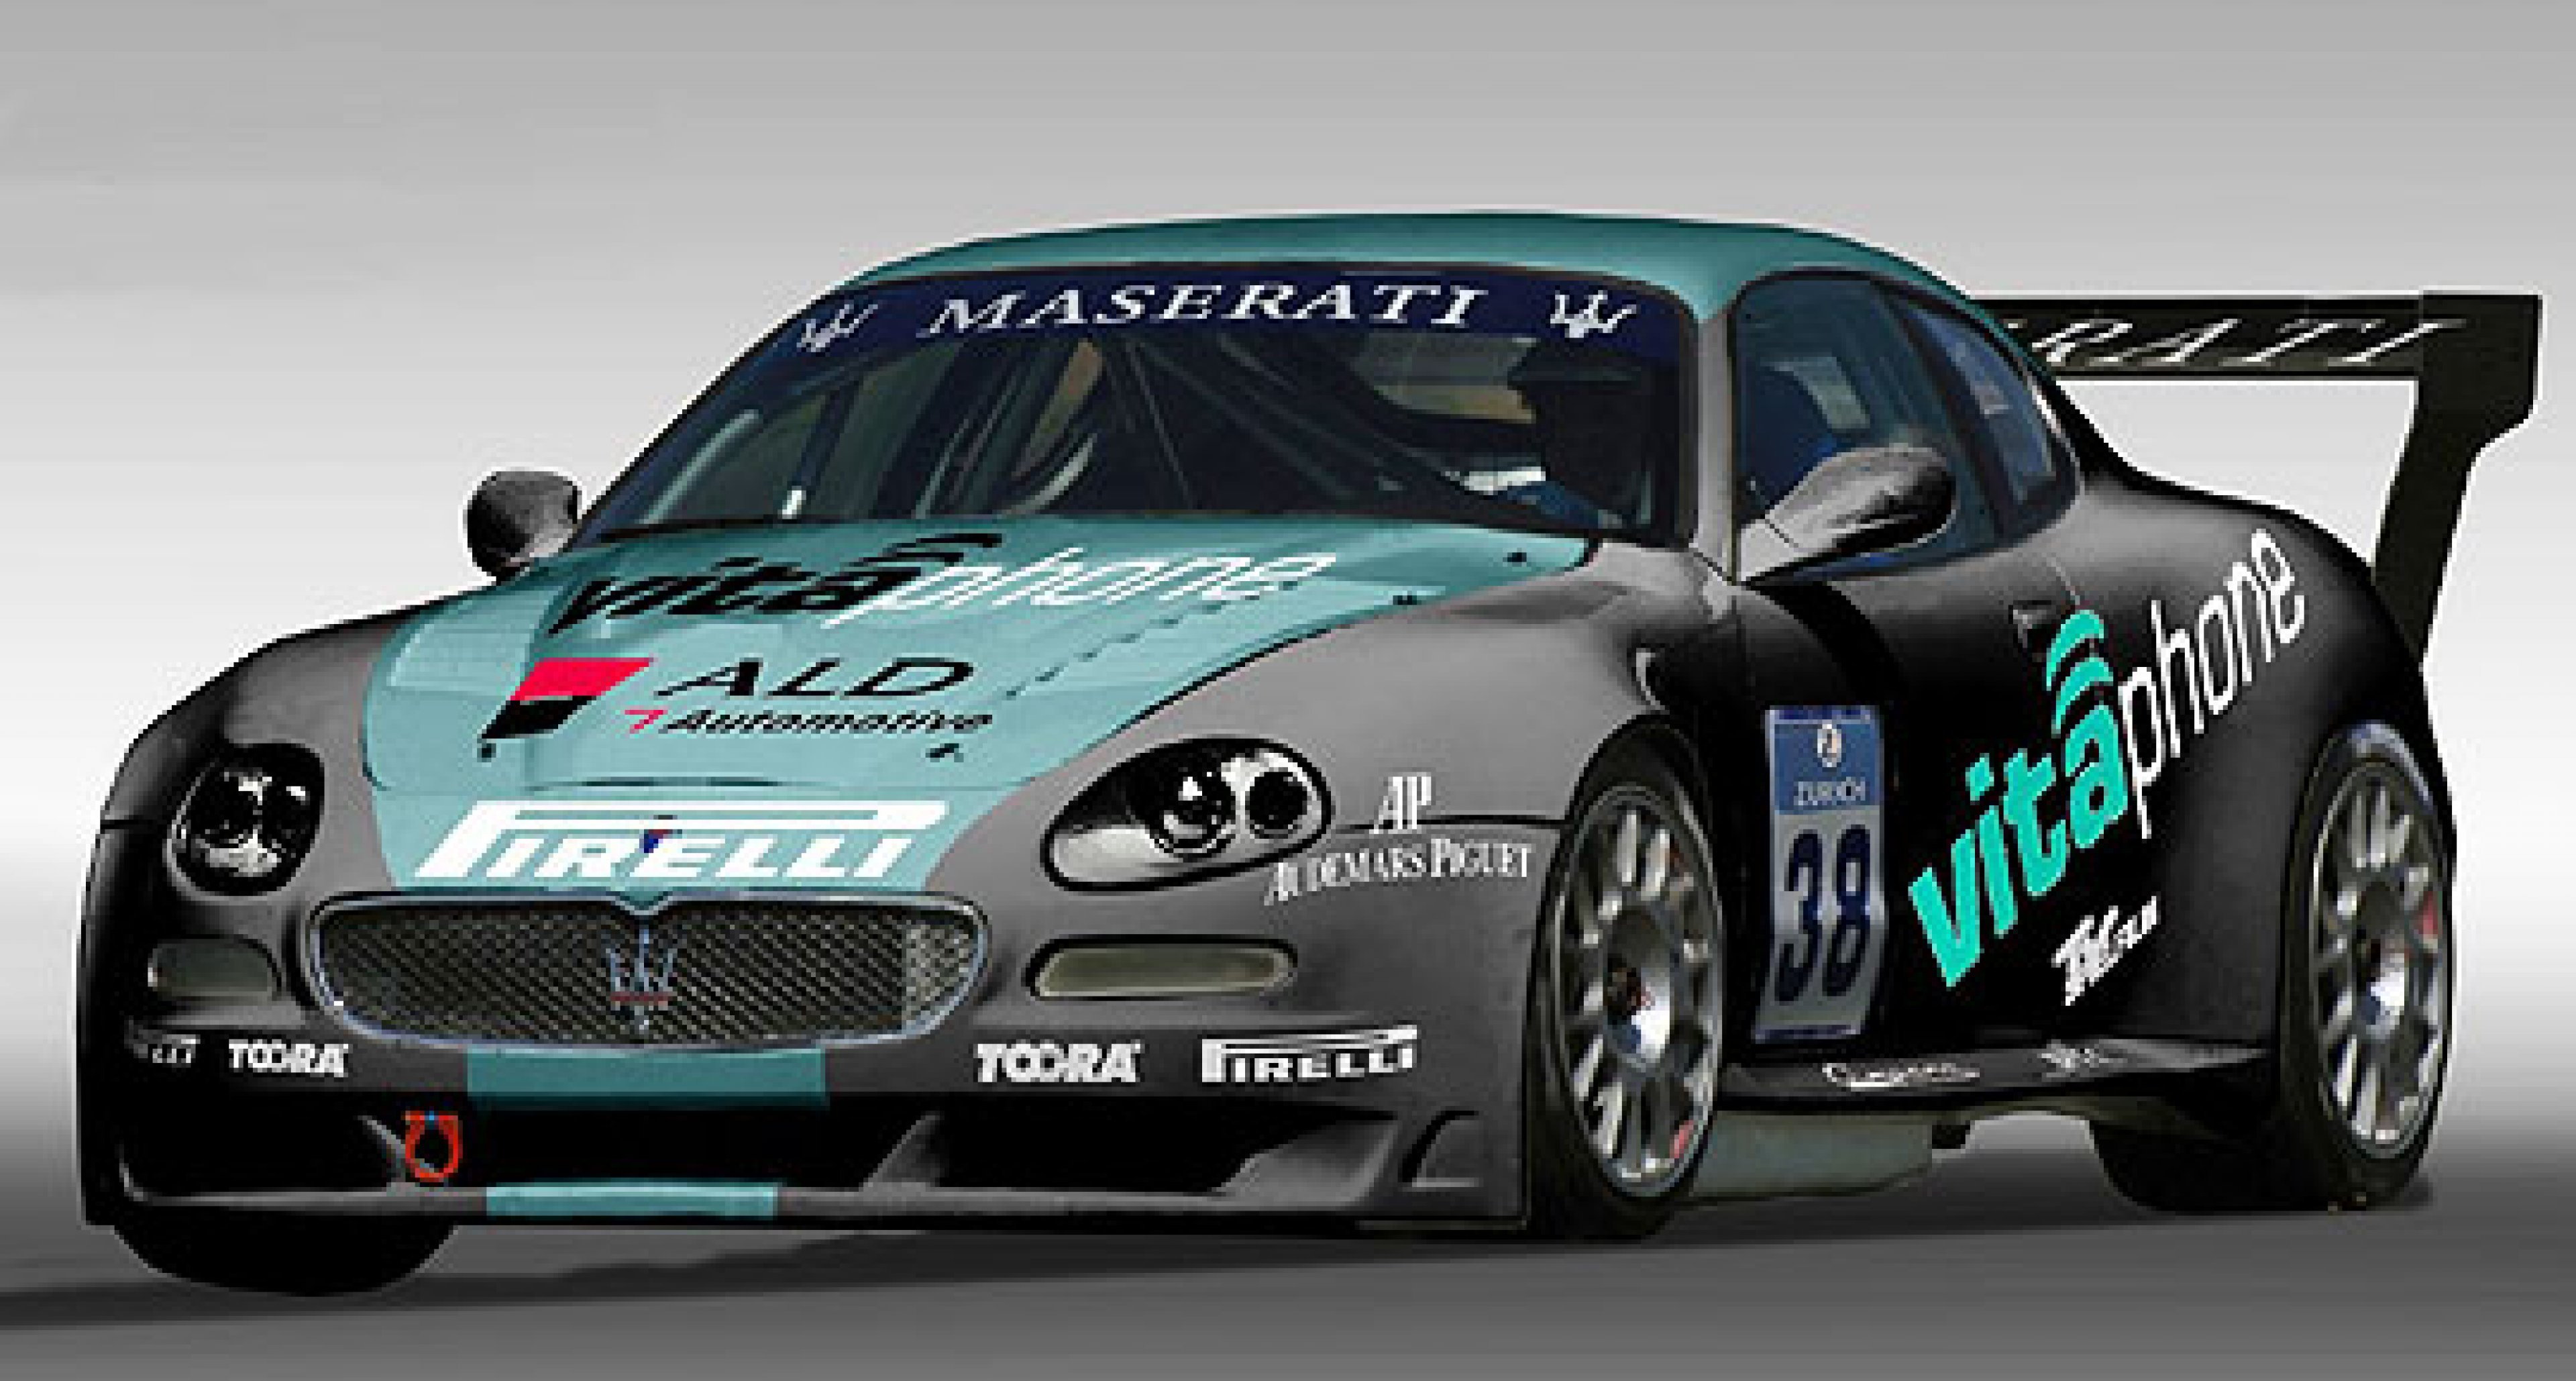 Maserati at the 24 hours of Nürburgring